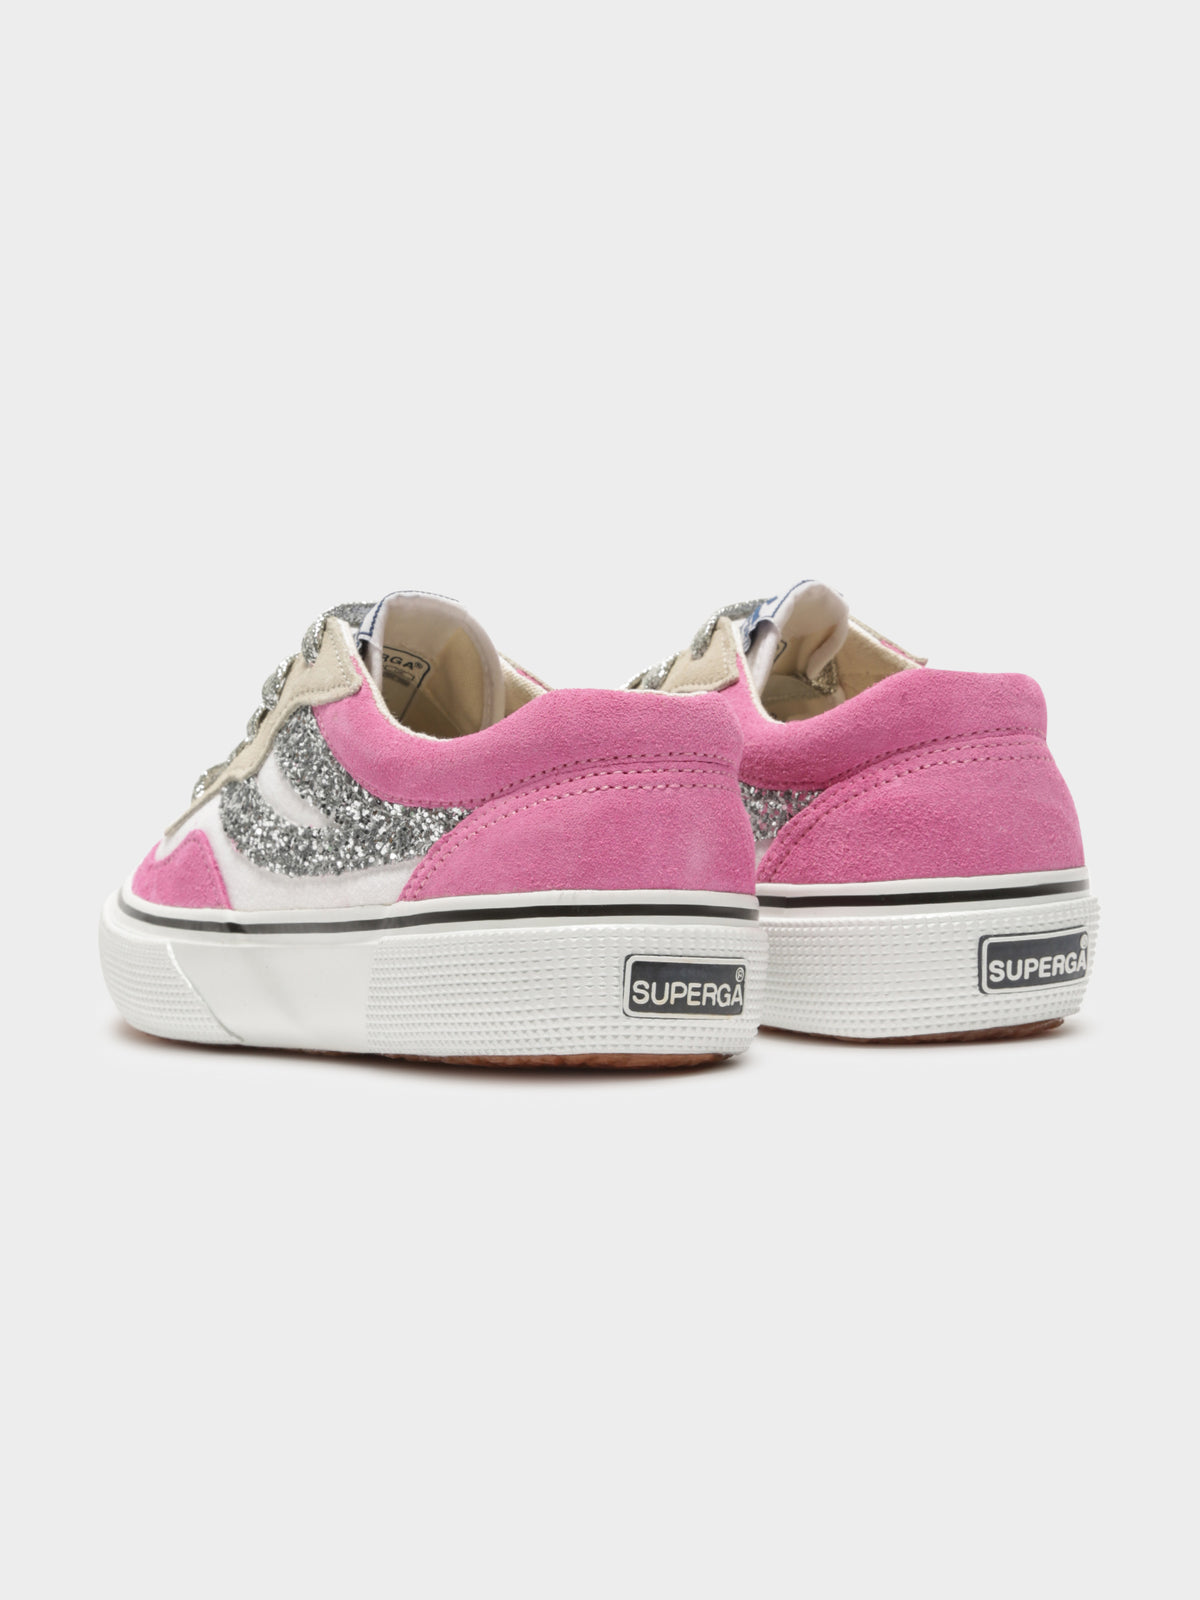 2941 Revolley Suecot Glitter Sneakers in Fuschia